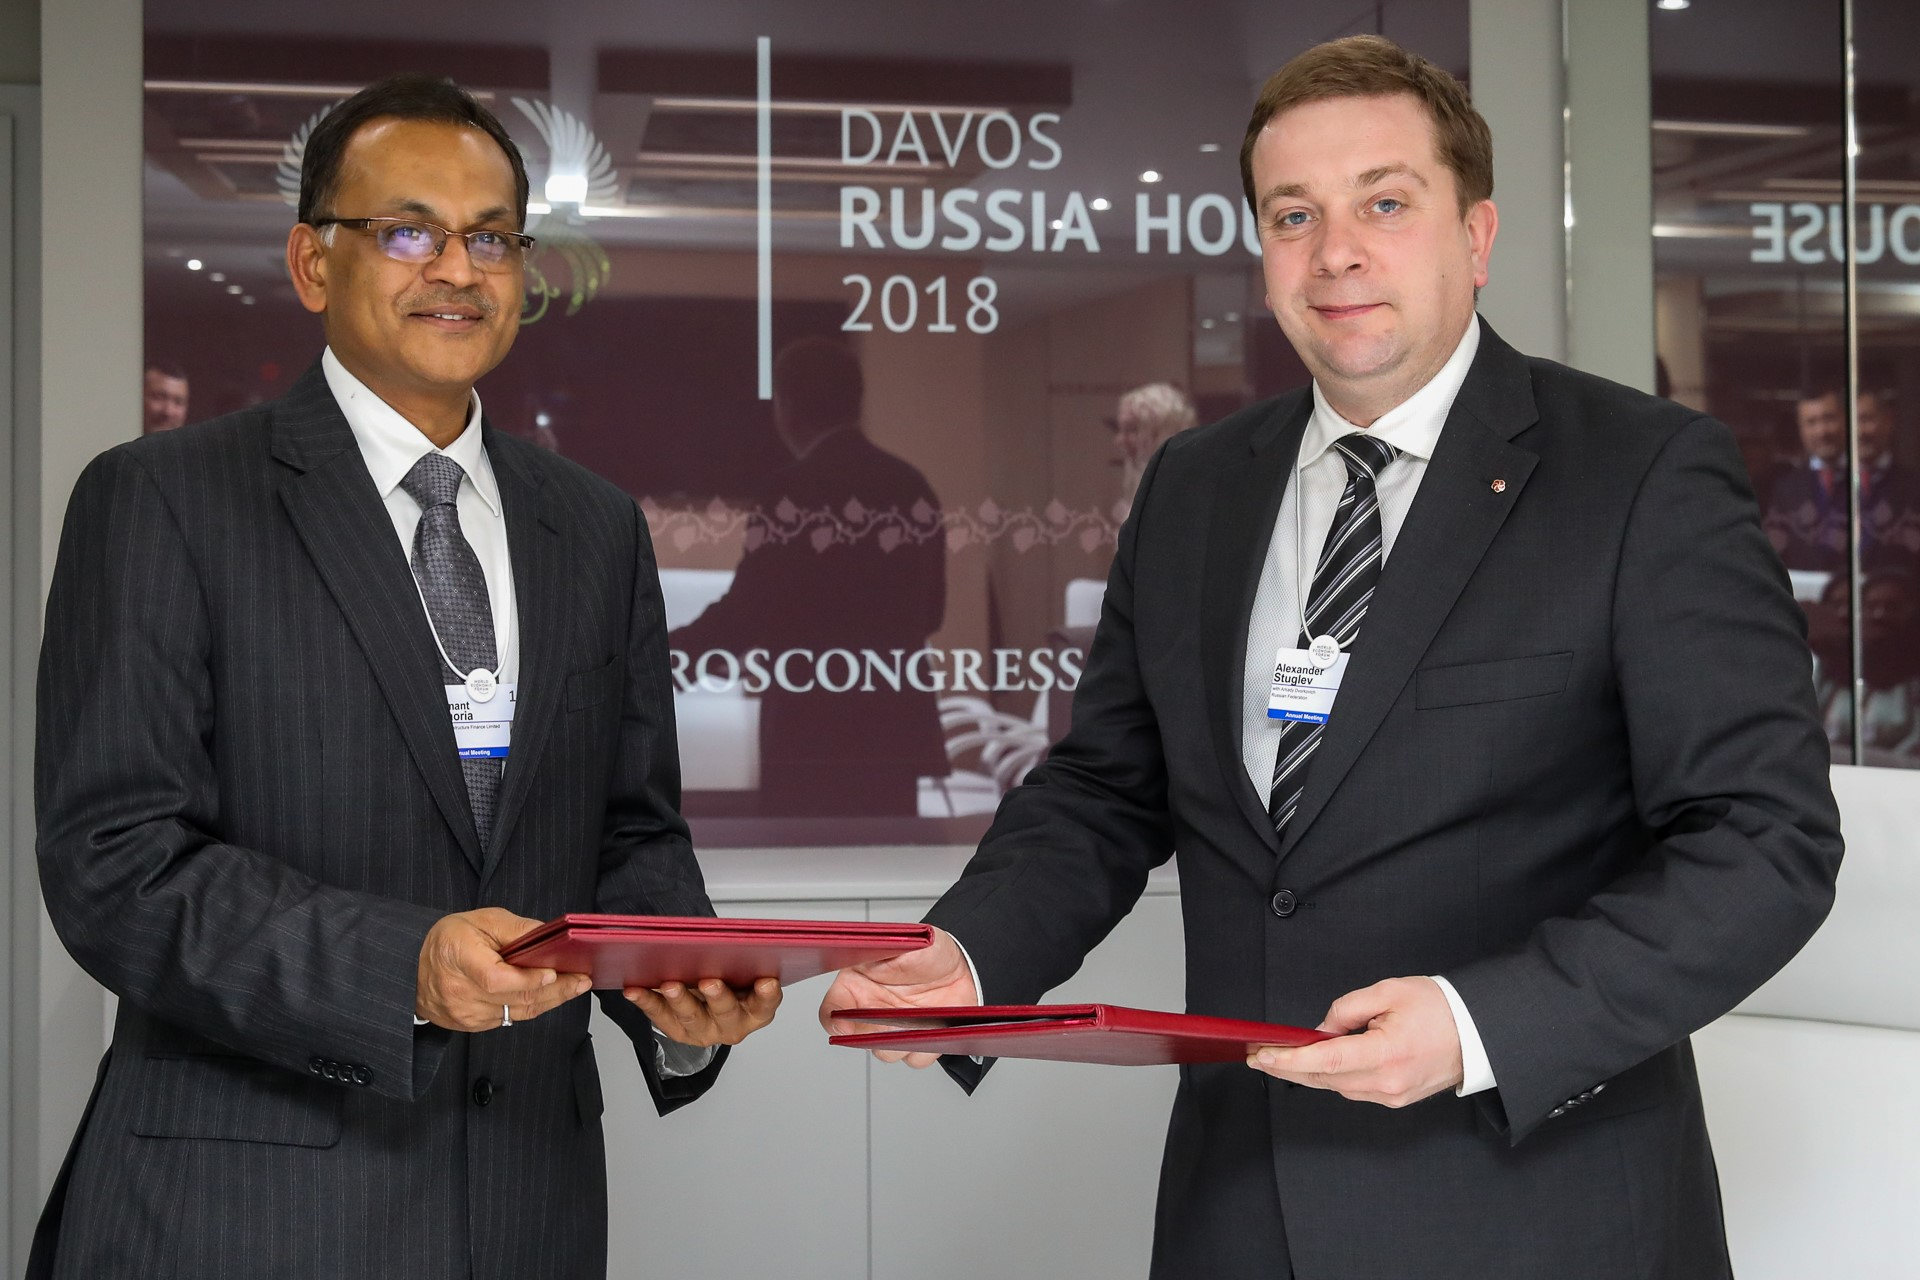 Roscongress Foundation signs agreement at Russia House in Davos